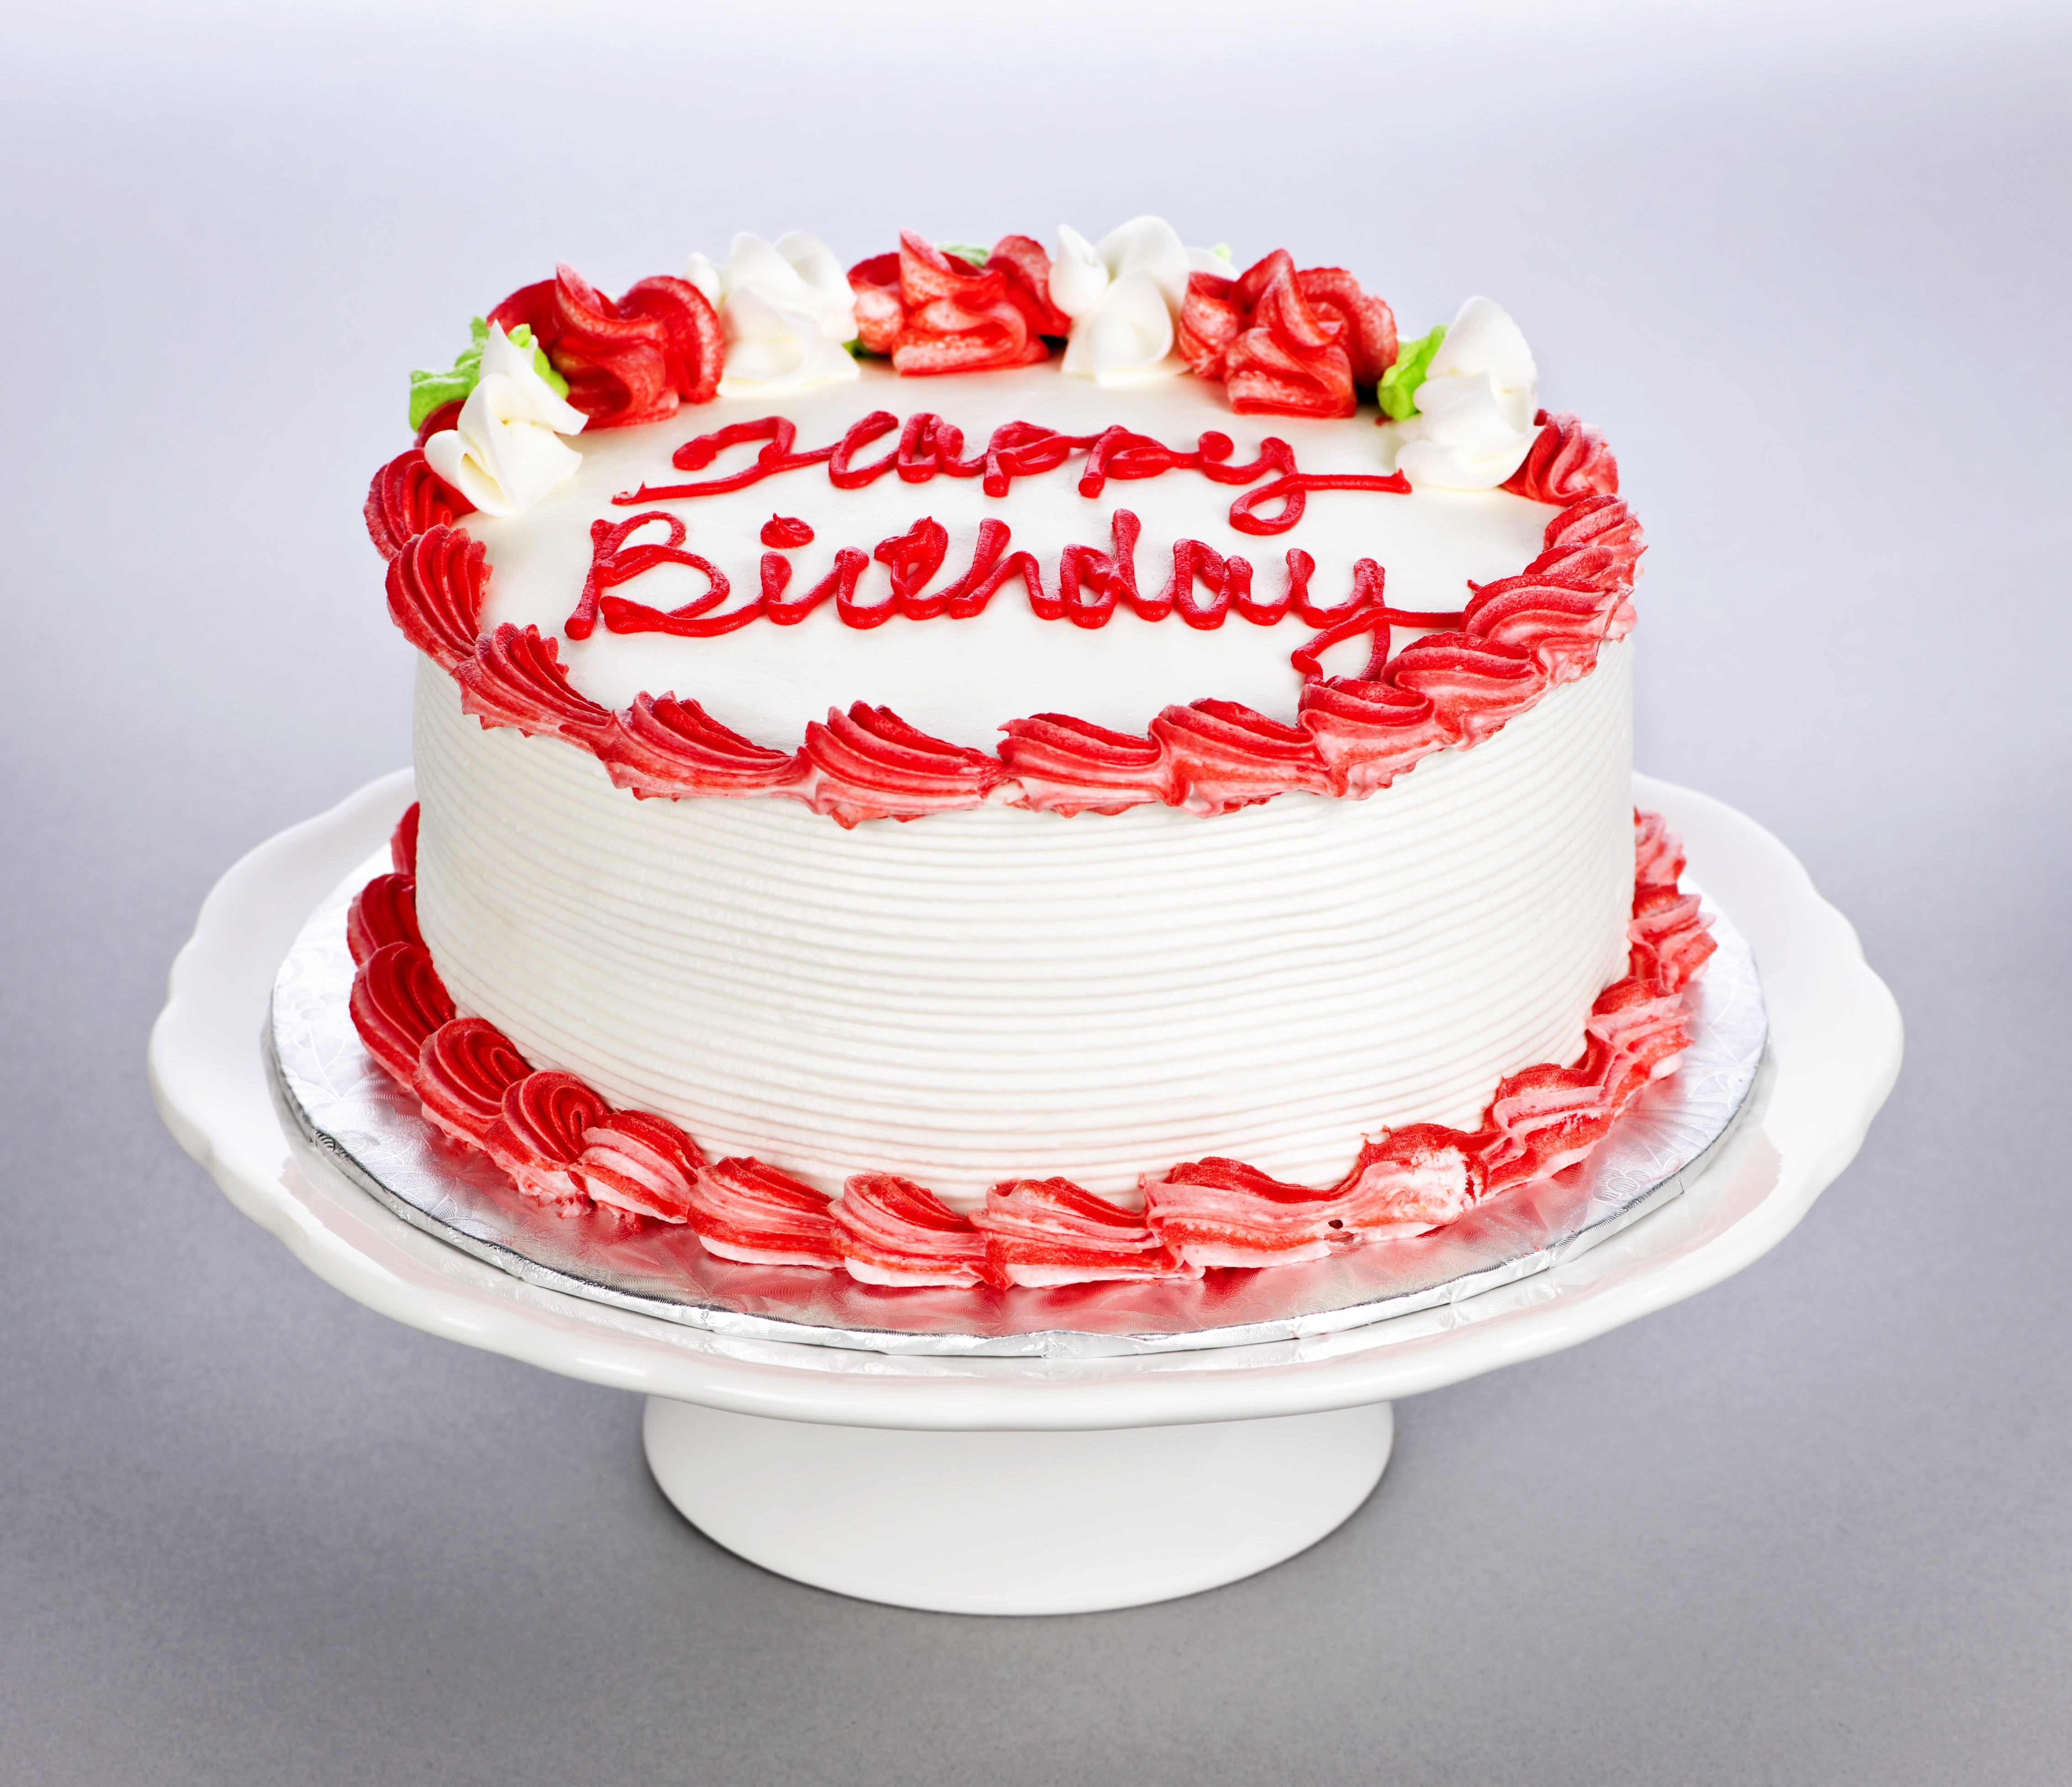 Round Cake w/ Red Frosting and Filling